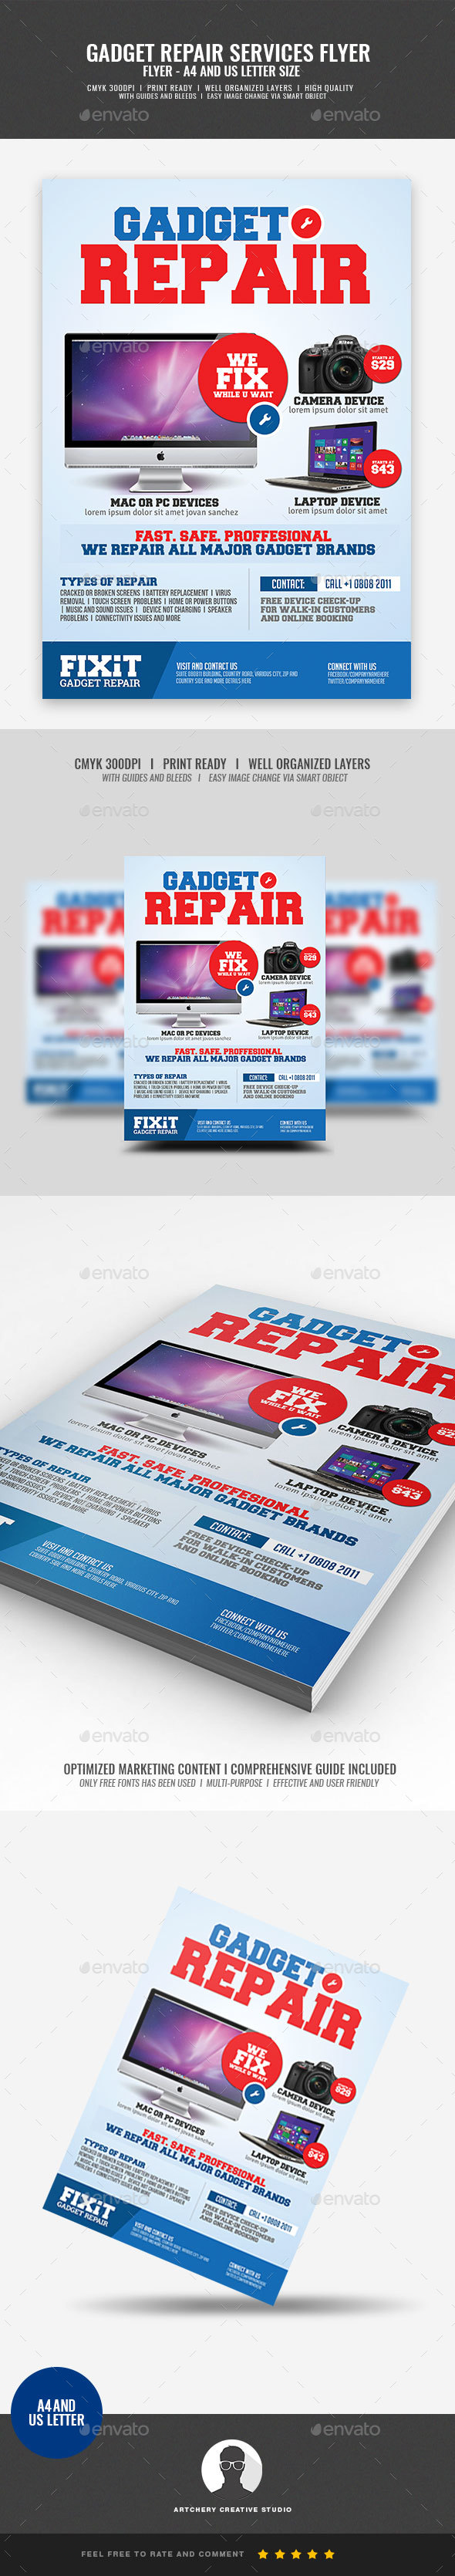 Electronic Gadget Repair Flyer - Commerce Flyers